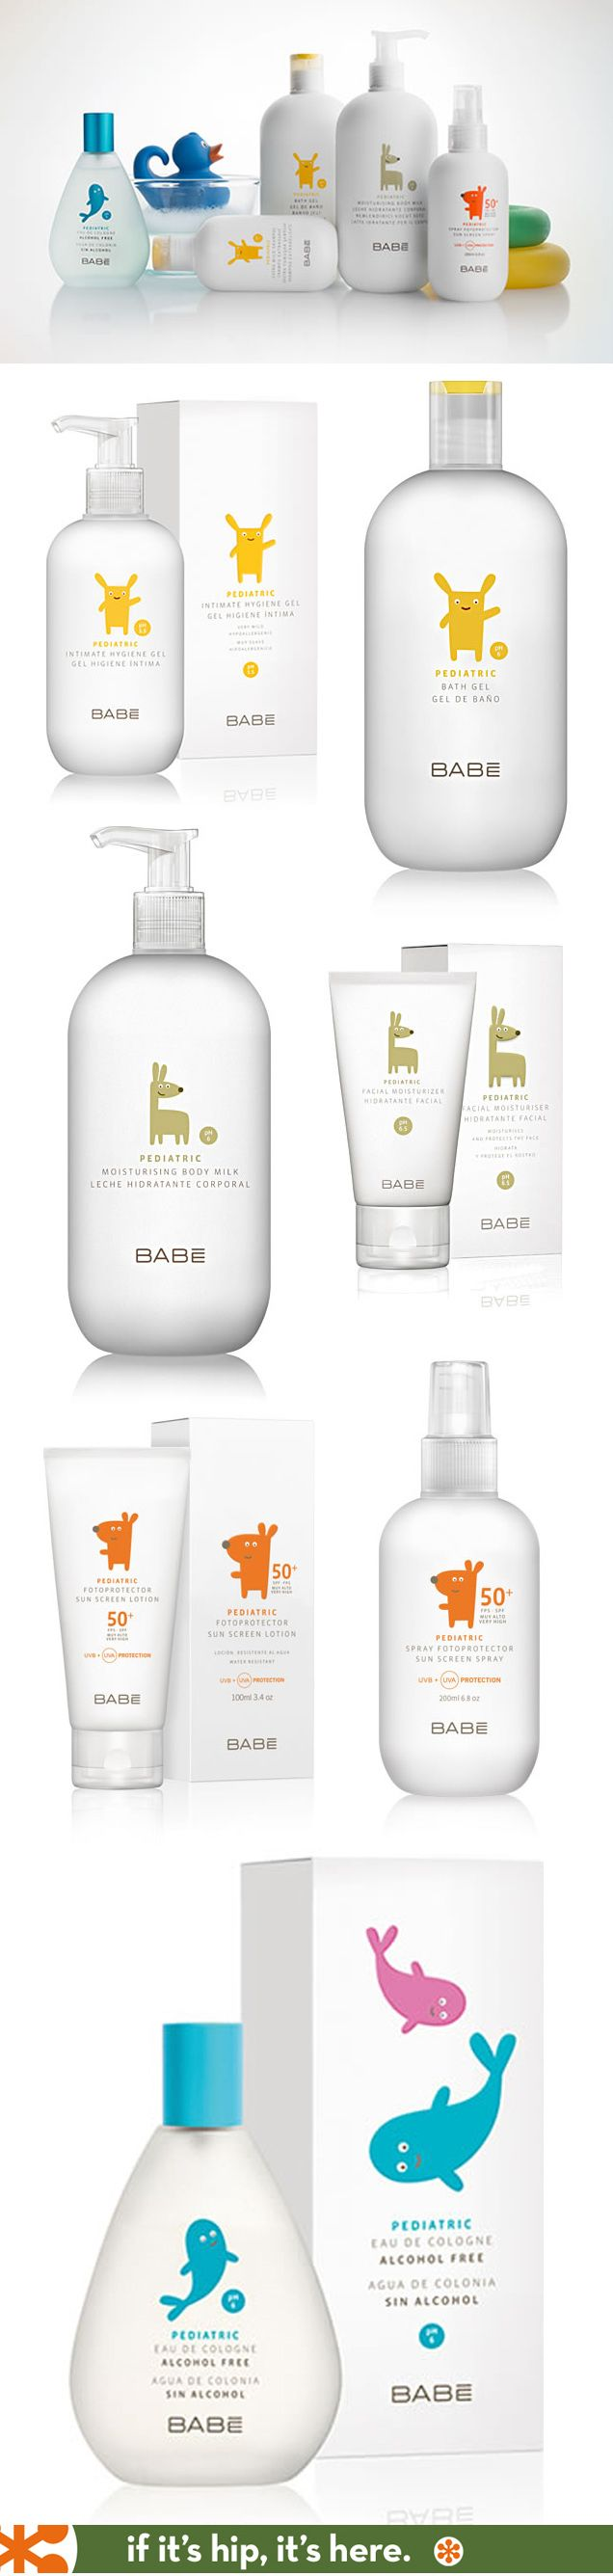 best packaging images on pinterest packaging product design